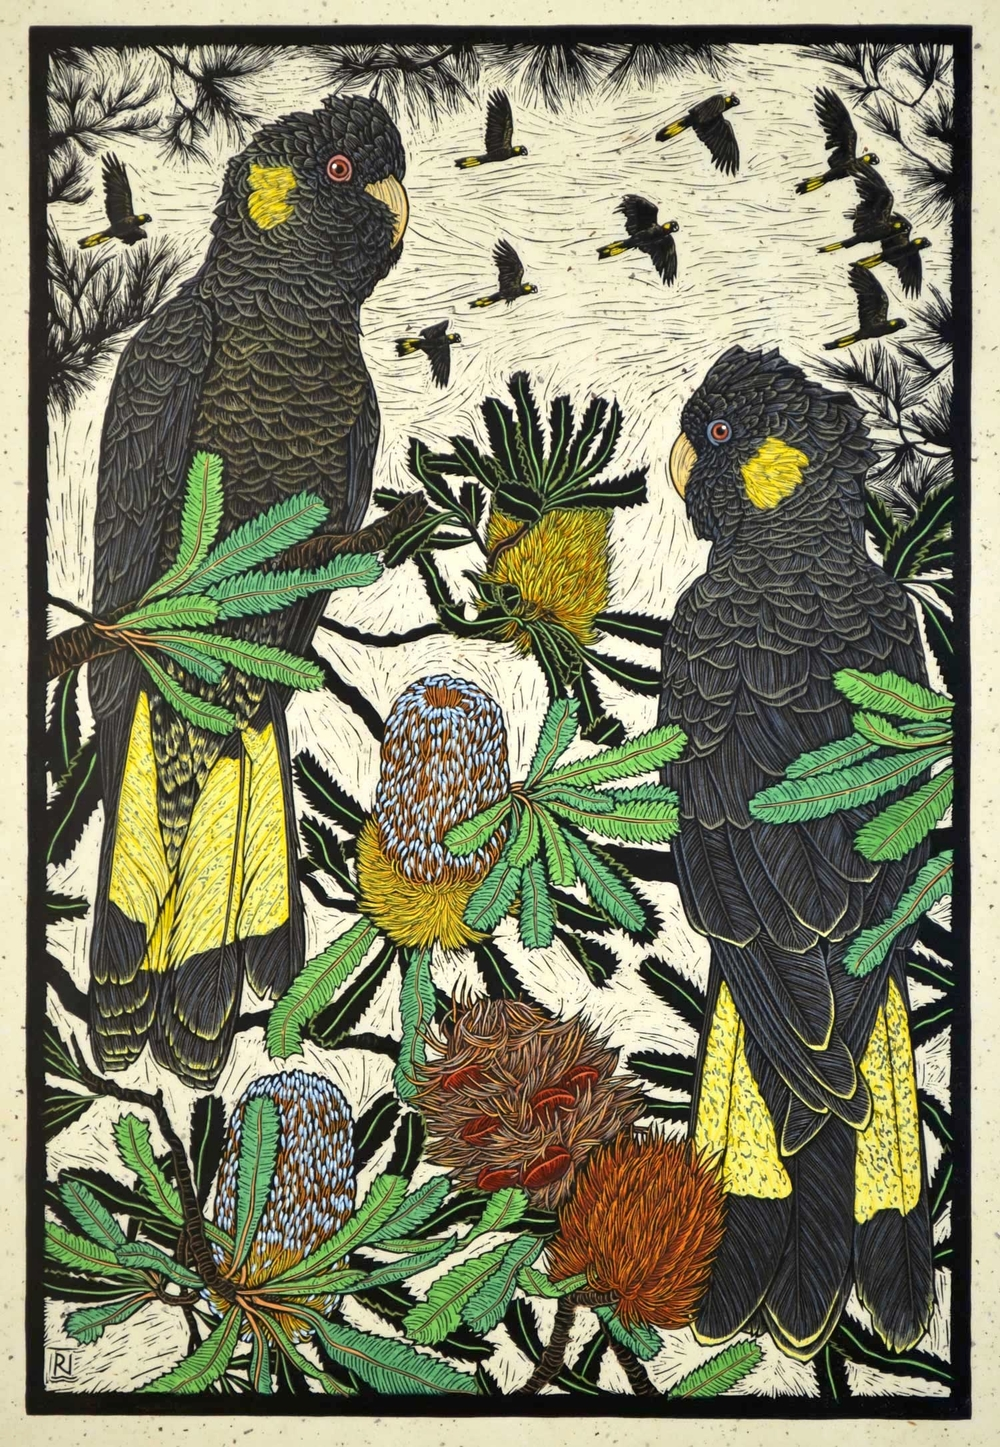 Yellow-tailed black Cockatoo & Banksia  75.5 x 50.5 cm   Edition of 50  Hand coloured linocut on handmade Japanese paper   $1,700